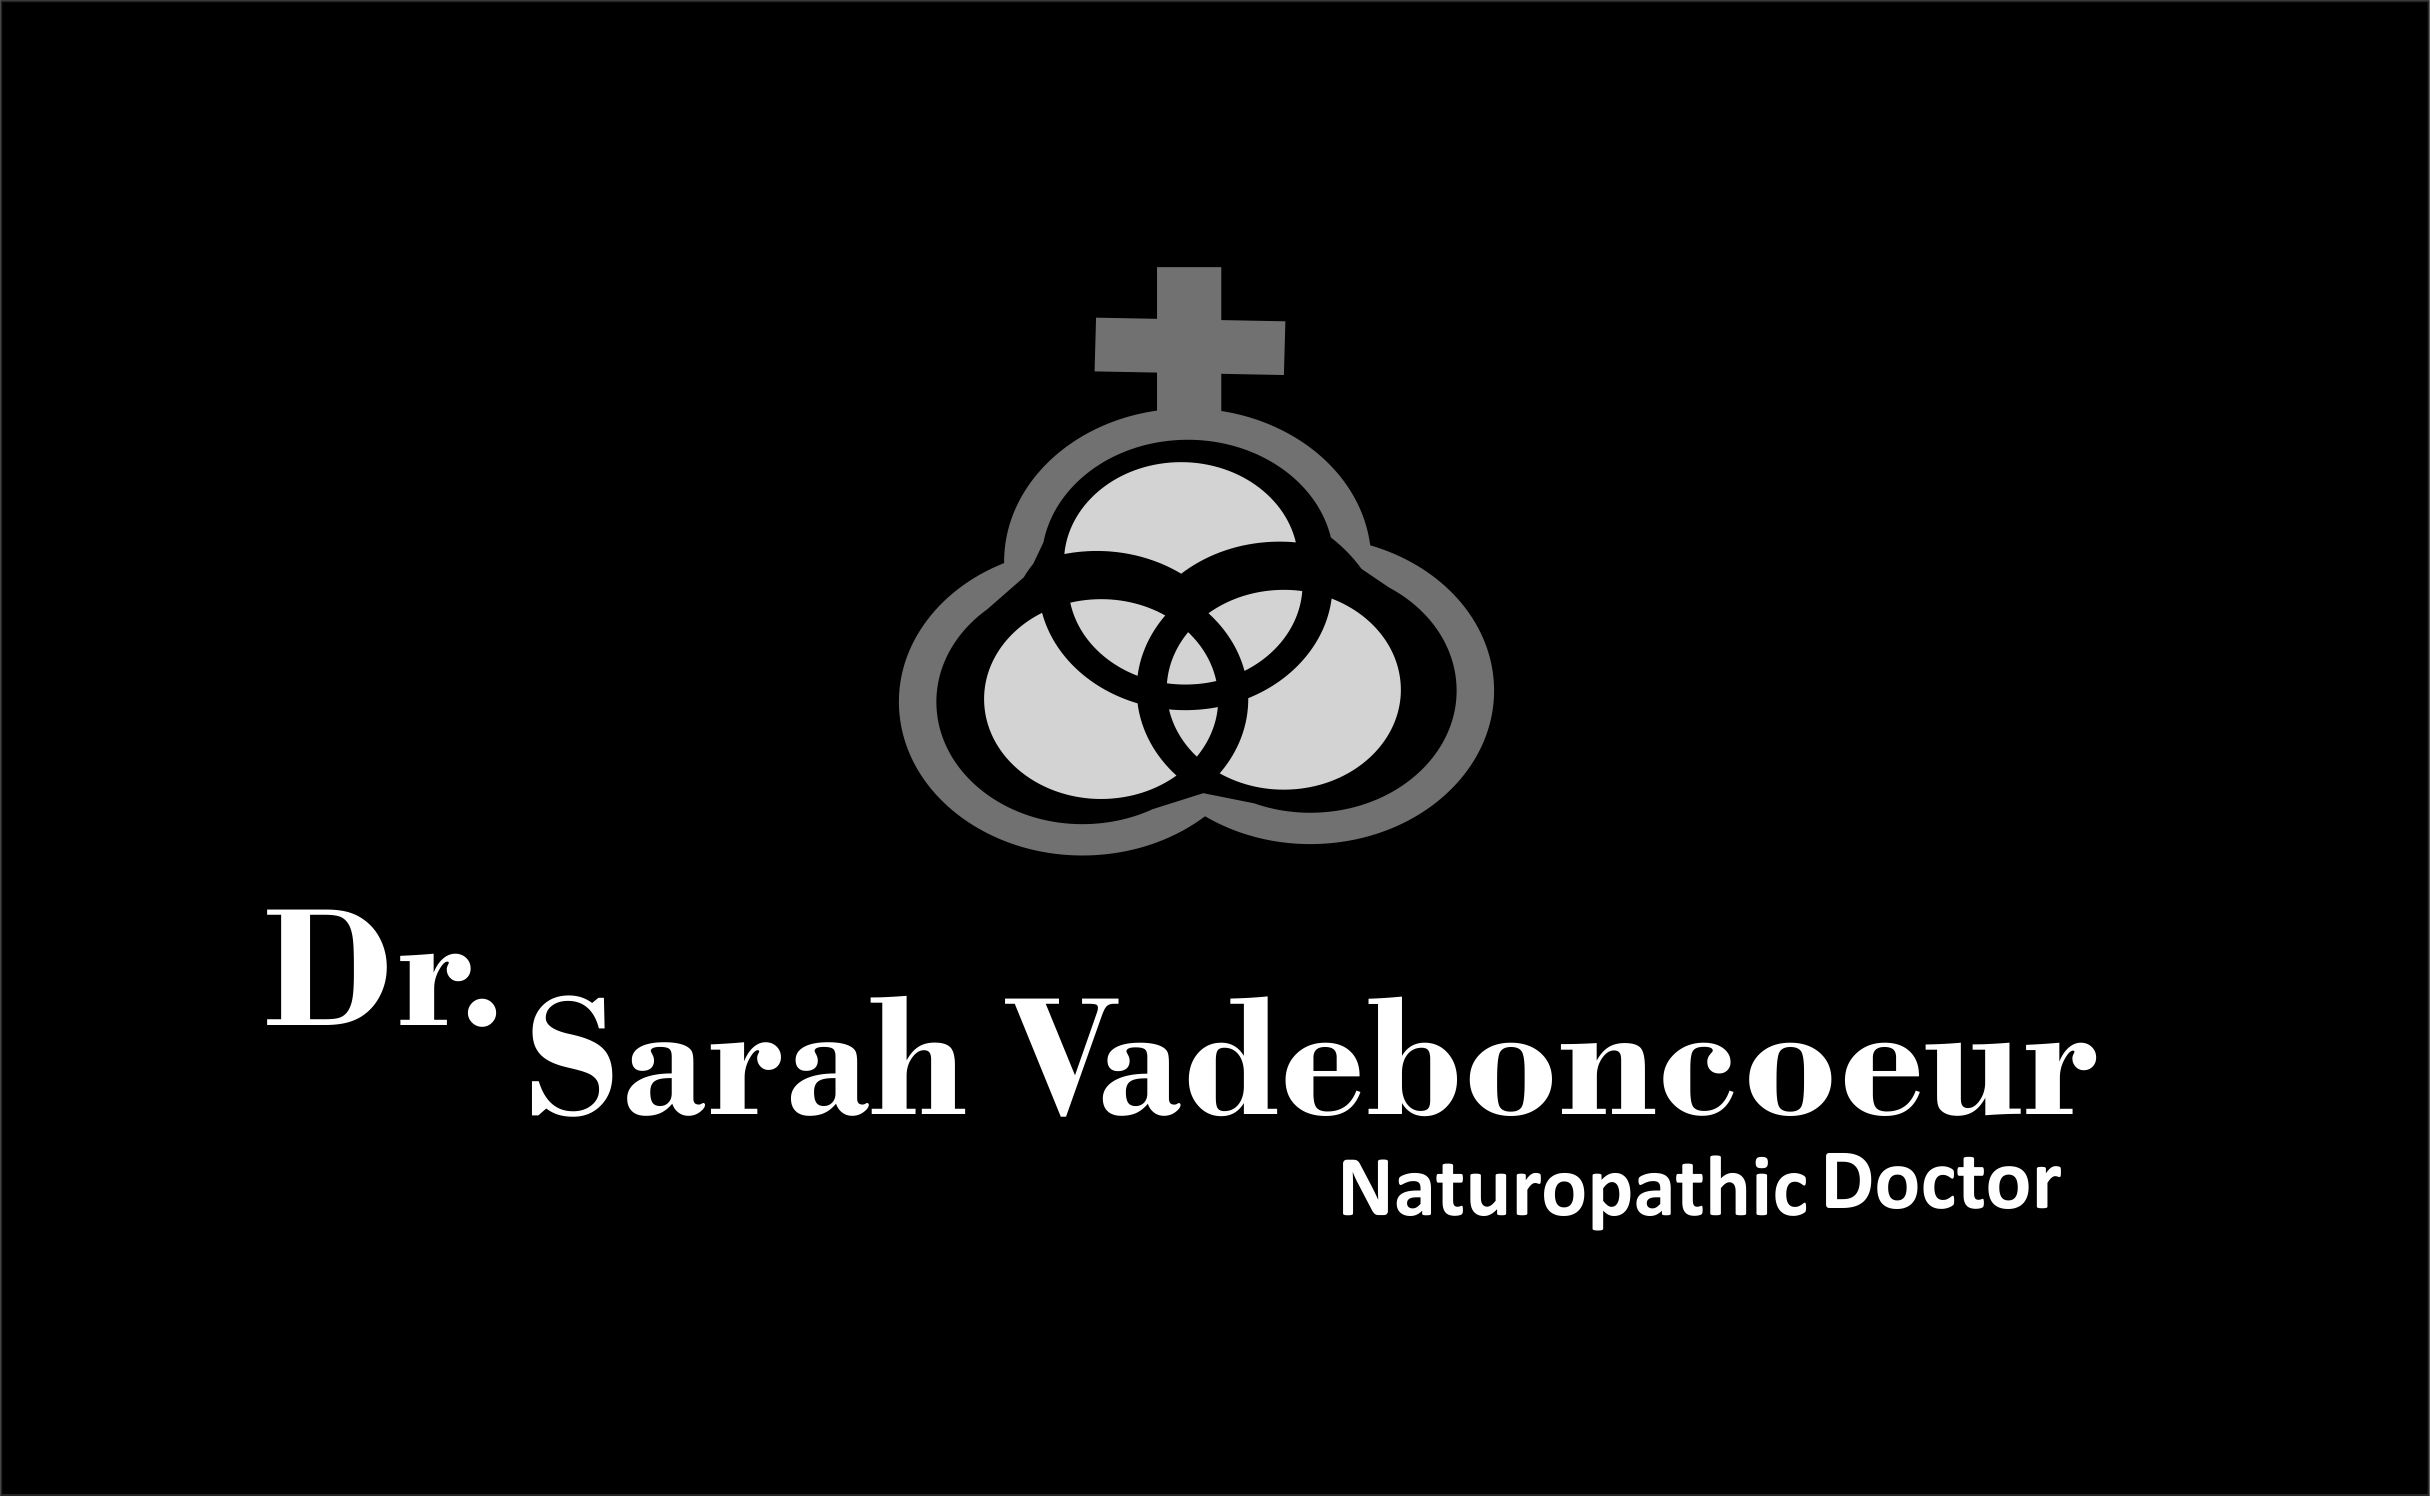 Logo Design by Cu Jcd - Entry No. 87 in the Logo Design Contest New Logo Design for Dr. Sarah Vadeboncoeur, Naturopathic Doctor.